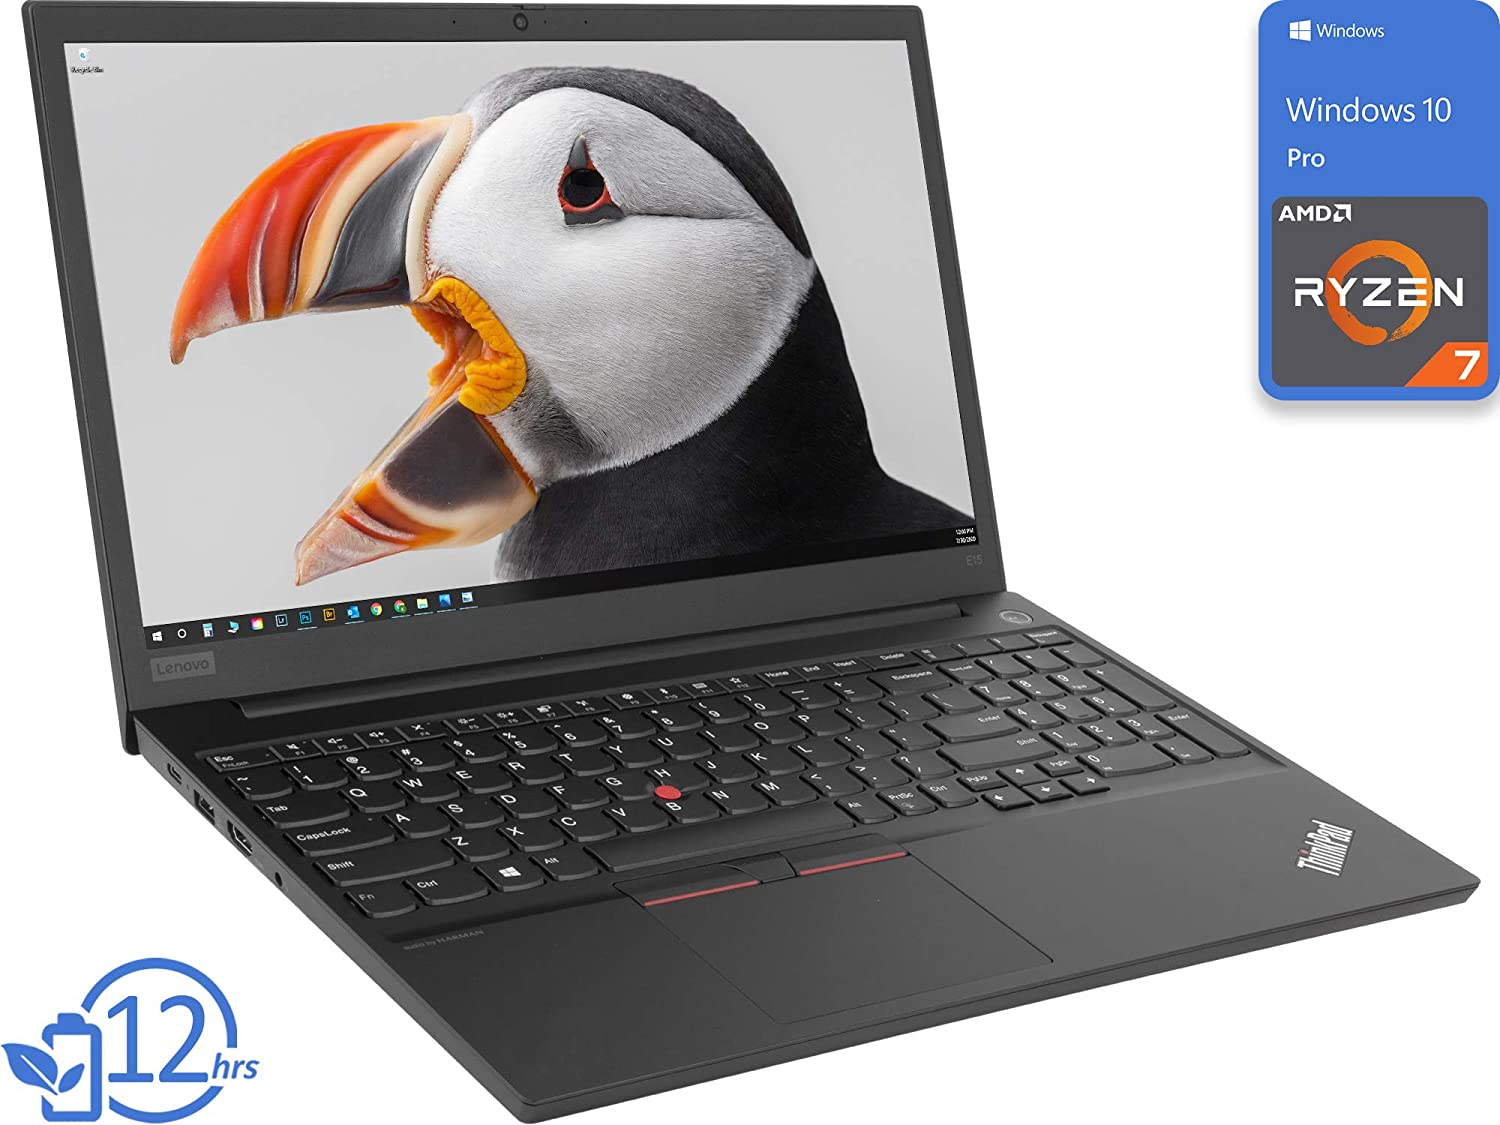 "Lenovo ThinkPad E15 Laptop, 15.6"" FHD Display, AMD Ryzen 7 4700U Upto 4.1GHz, 8GB RAM, 1TB NVMe SSD, HDMI, DIsplayPort via USB-C, Card Reader, Wi-Fi, Bluetooth, Windows 10 Pro"